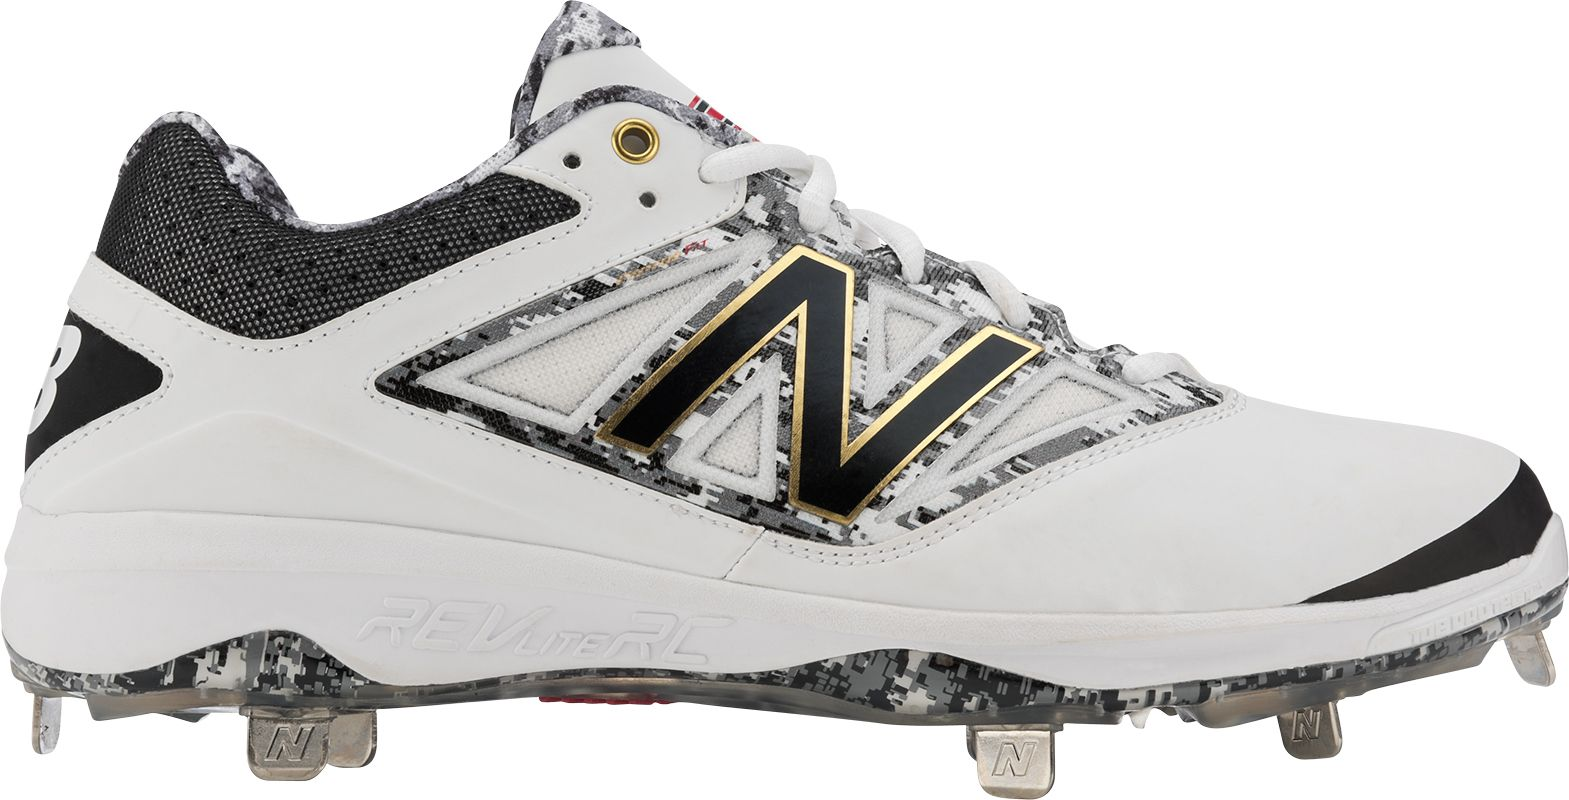 New Balance Men's Dustin Pedroia 4040 V3 Metal Baseball Cleats. 0:00. 0:00  / 0:00. noImageFound ???